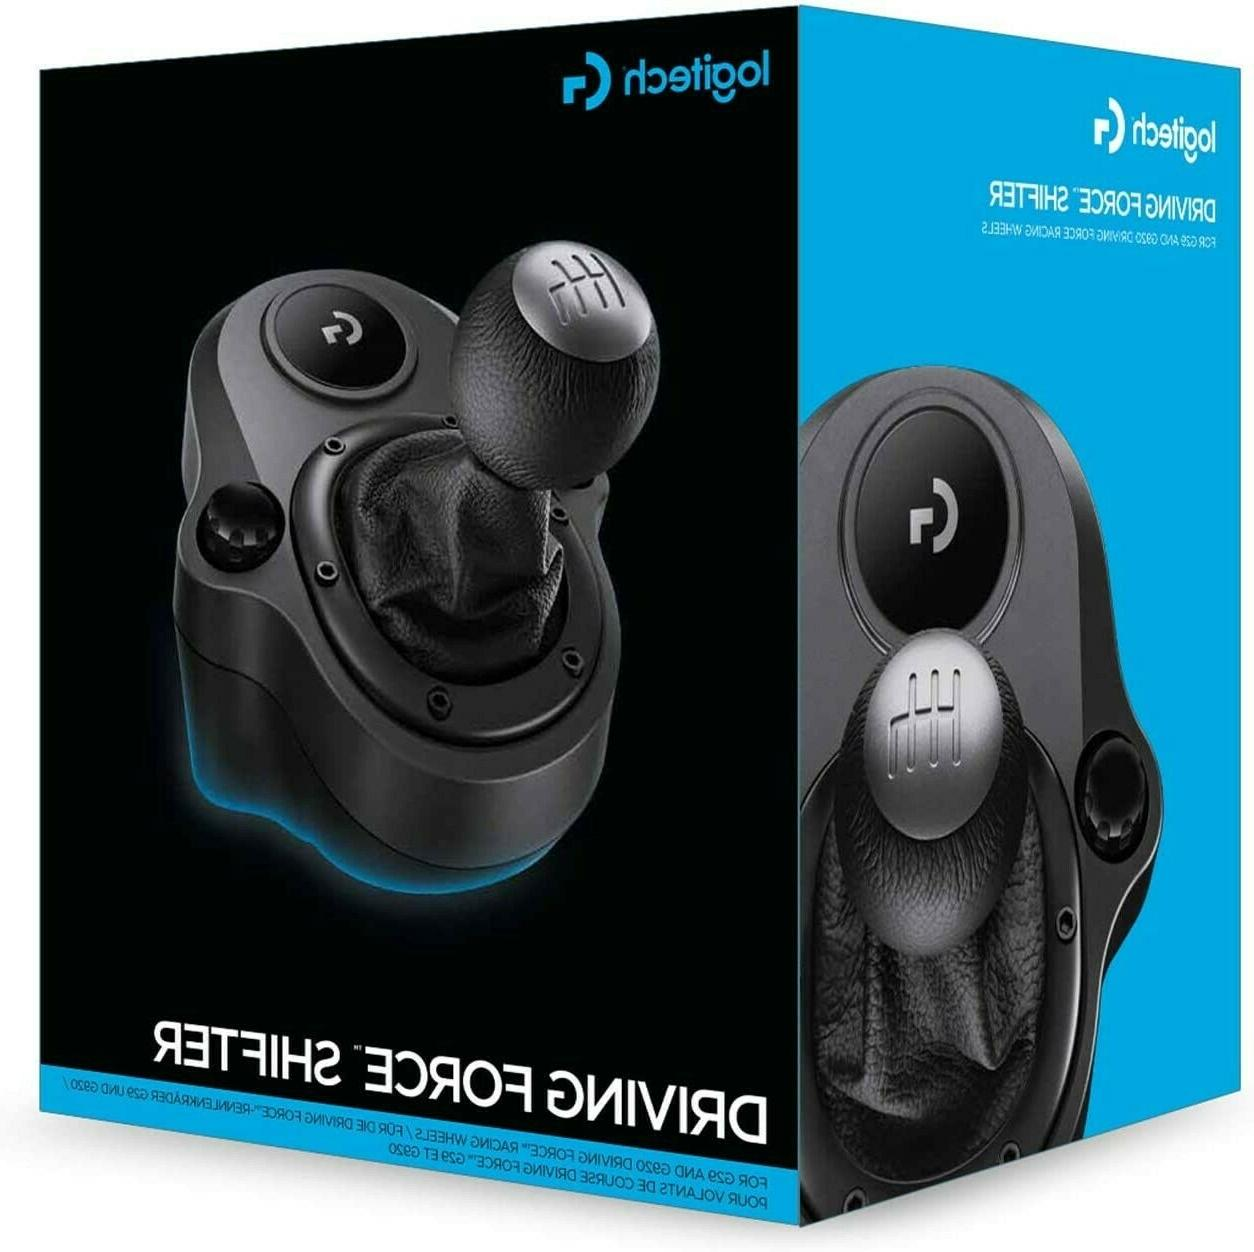 g gaming driving force shifter g29 g920